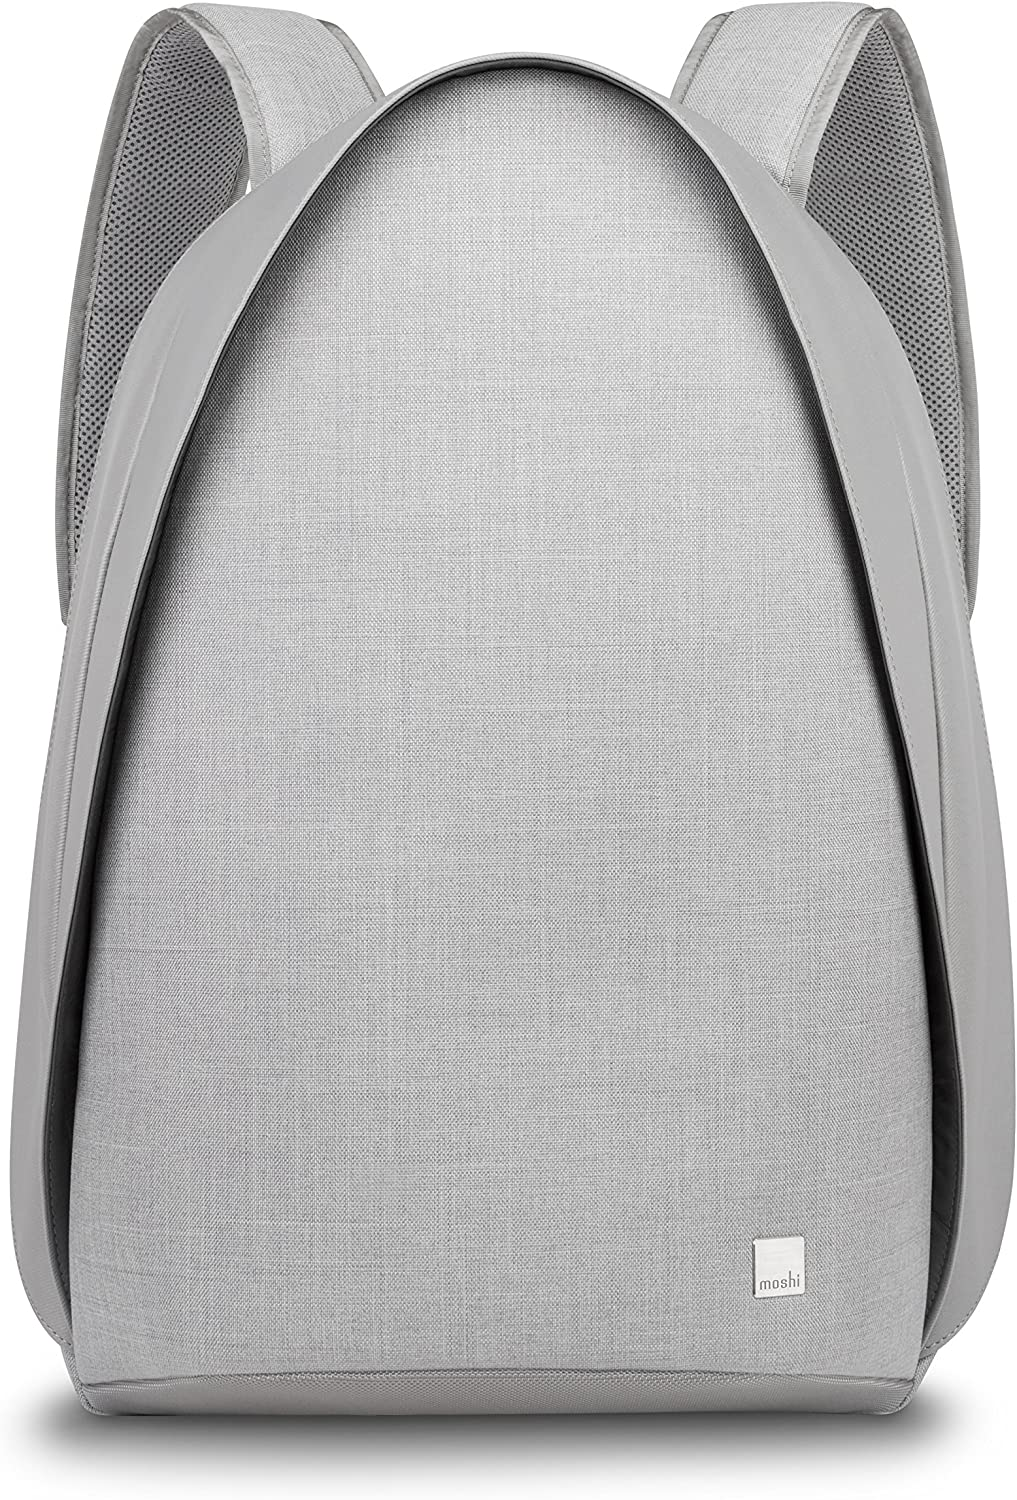 Moshi 99MO110261 Tego Anti-Theft Backpack with USB Charging Port, Water Resistant, Stone Gray